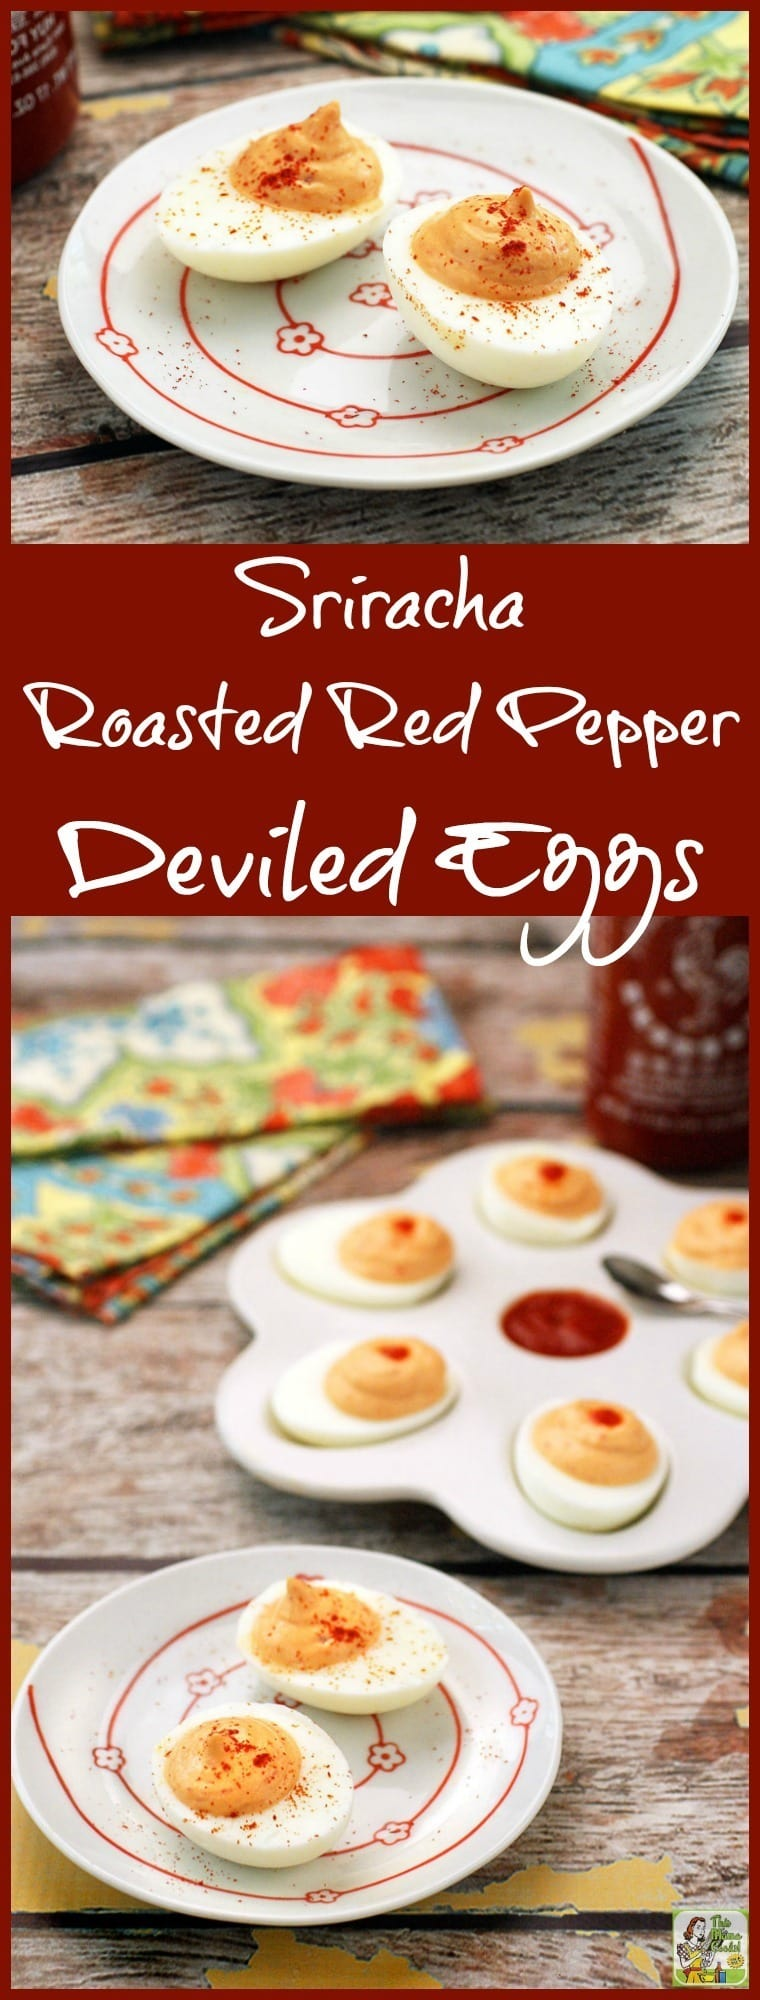 If you love spicy appetizers, you'll love Sriracha Roasted Red Pepper Deviled Eggs. These easy to make appetizers are perfect for parties. They're also naturally gluten free.